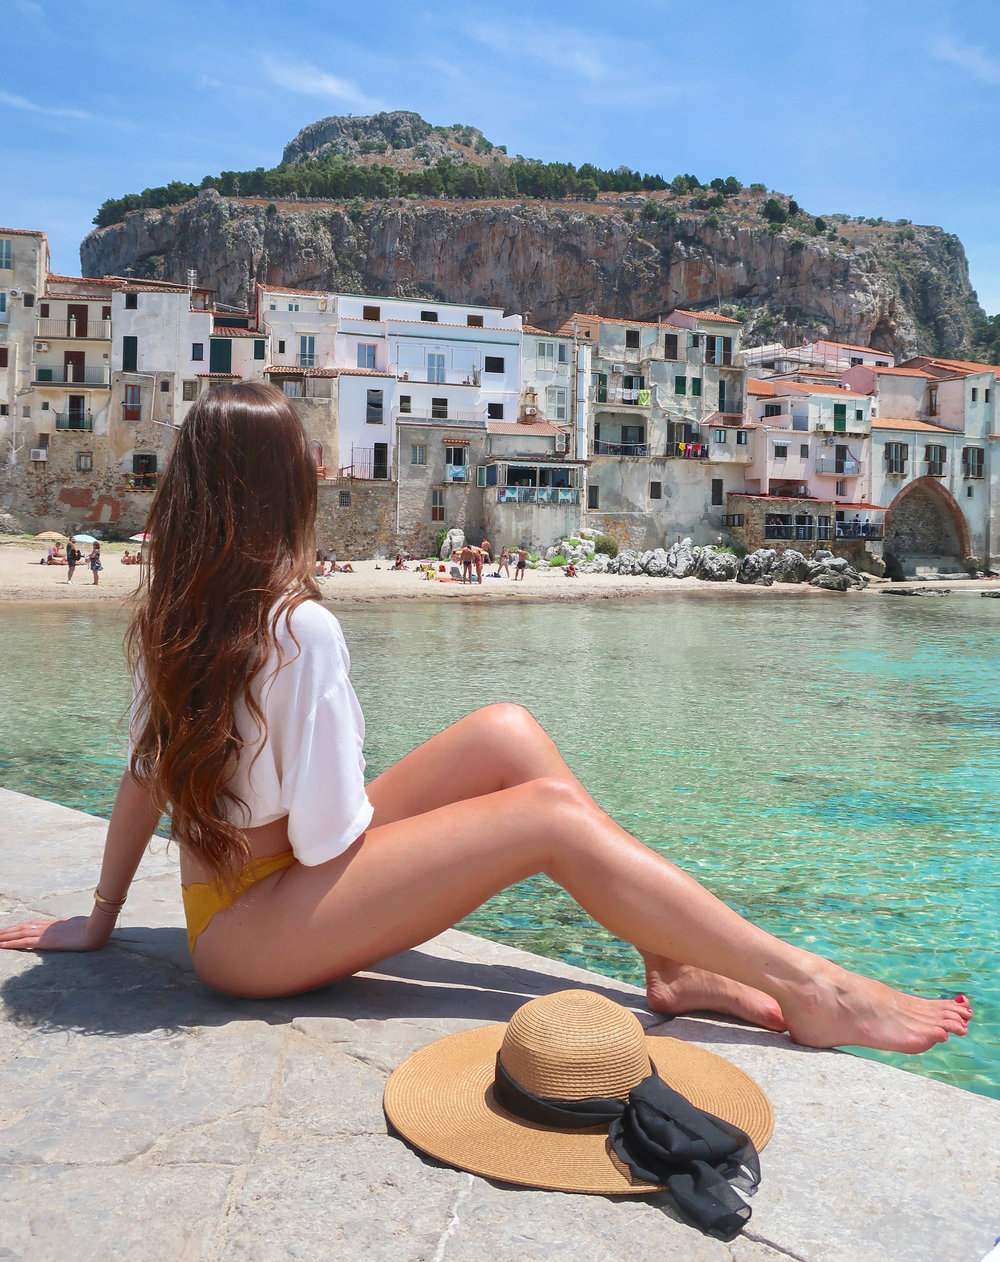 The sicilian town of cefalù is a popular beach amongst travelers and local italians alike.